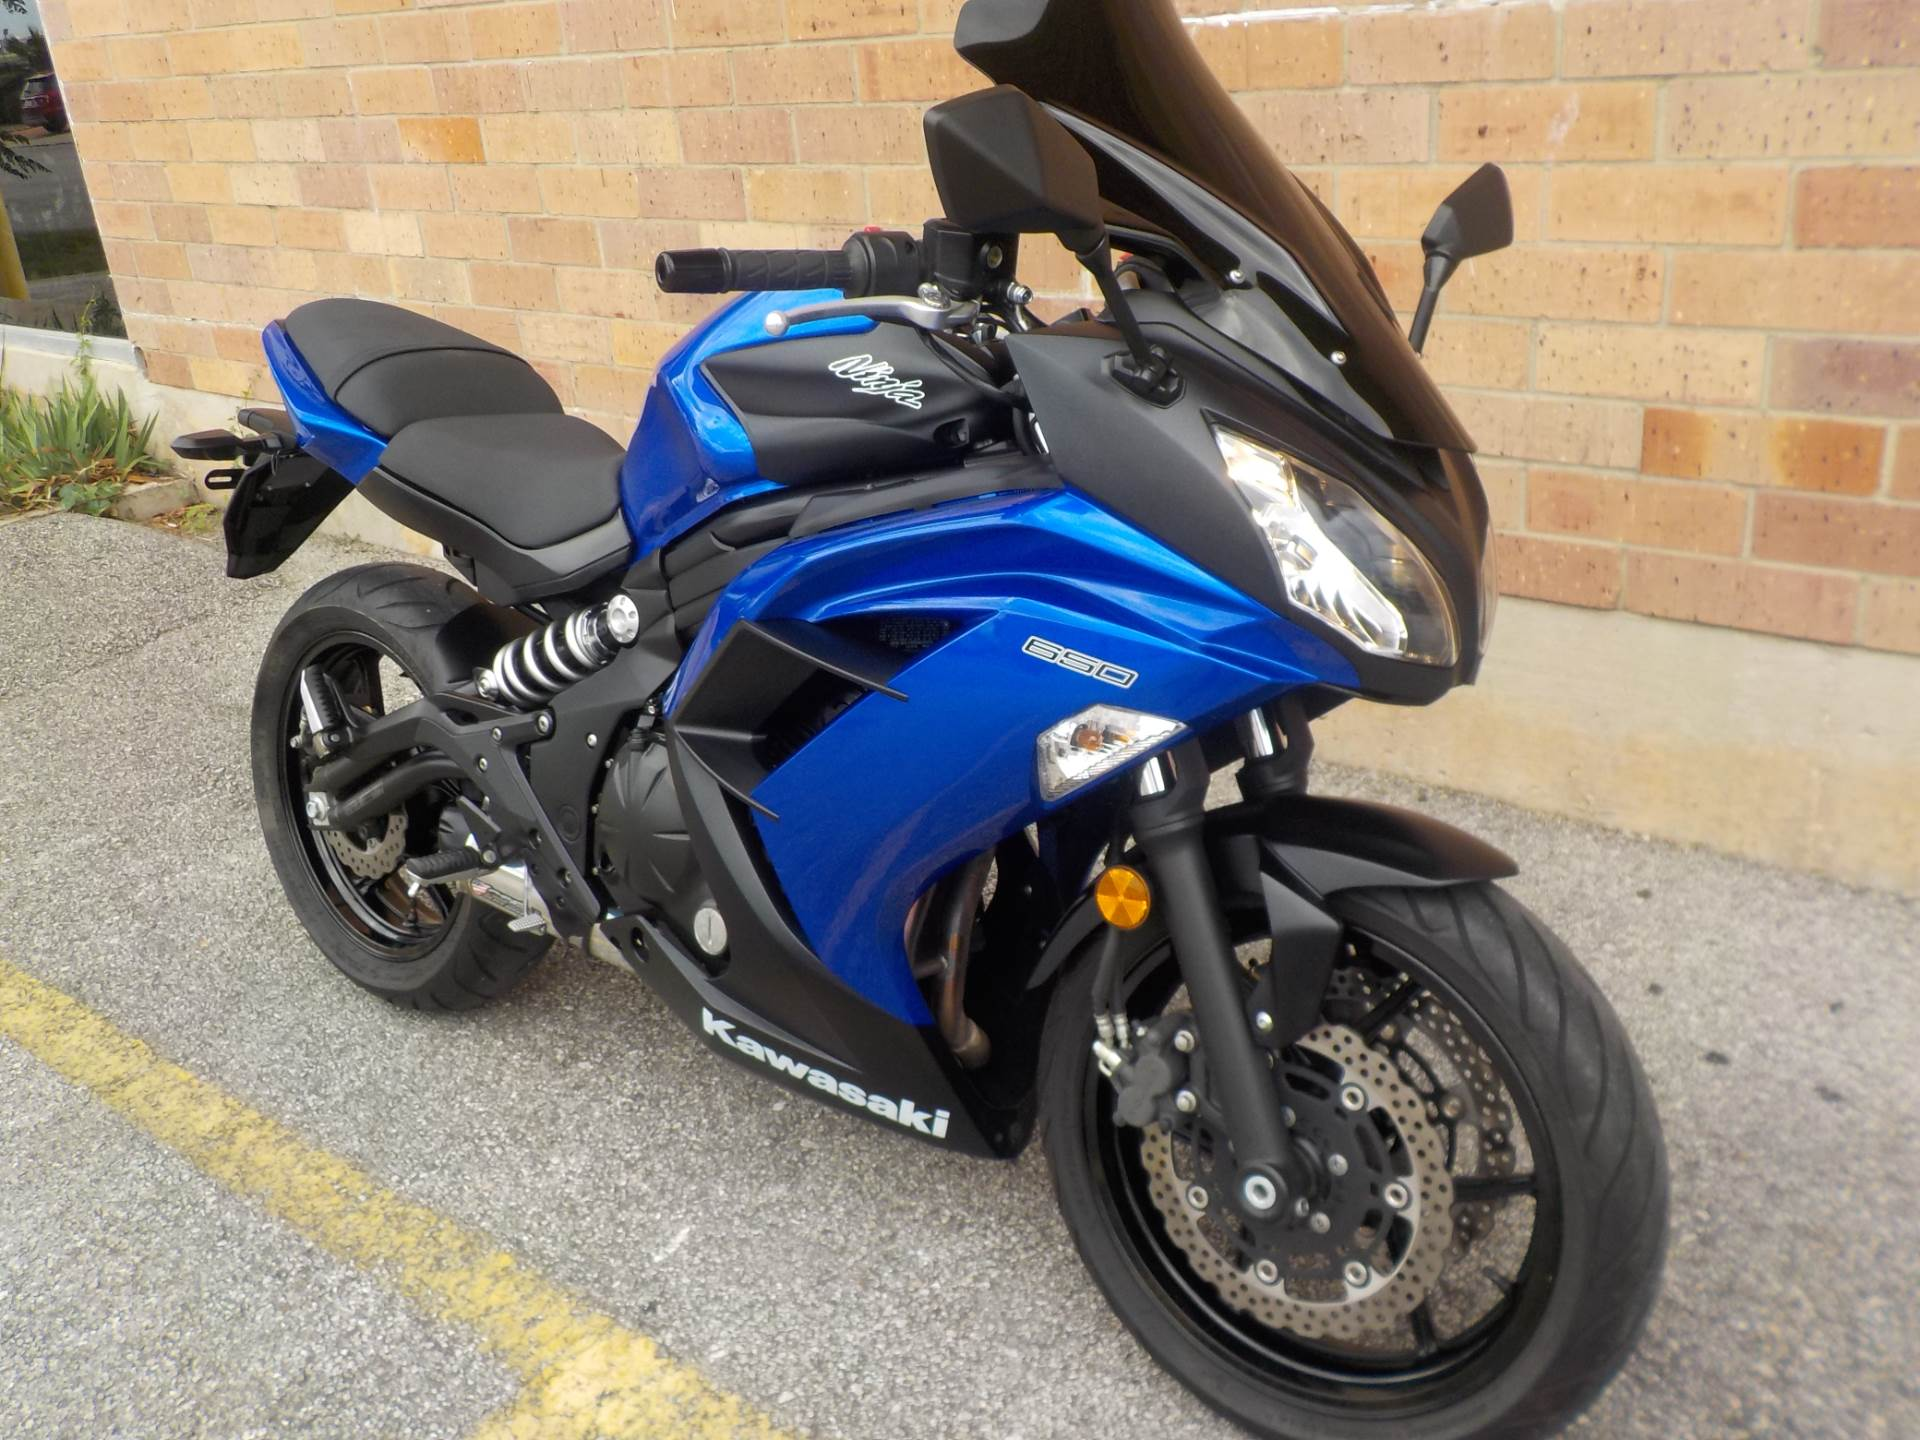 2013 Kawasaki Ninja® 650 in San Antonio, Texas